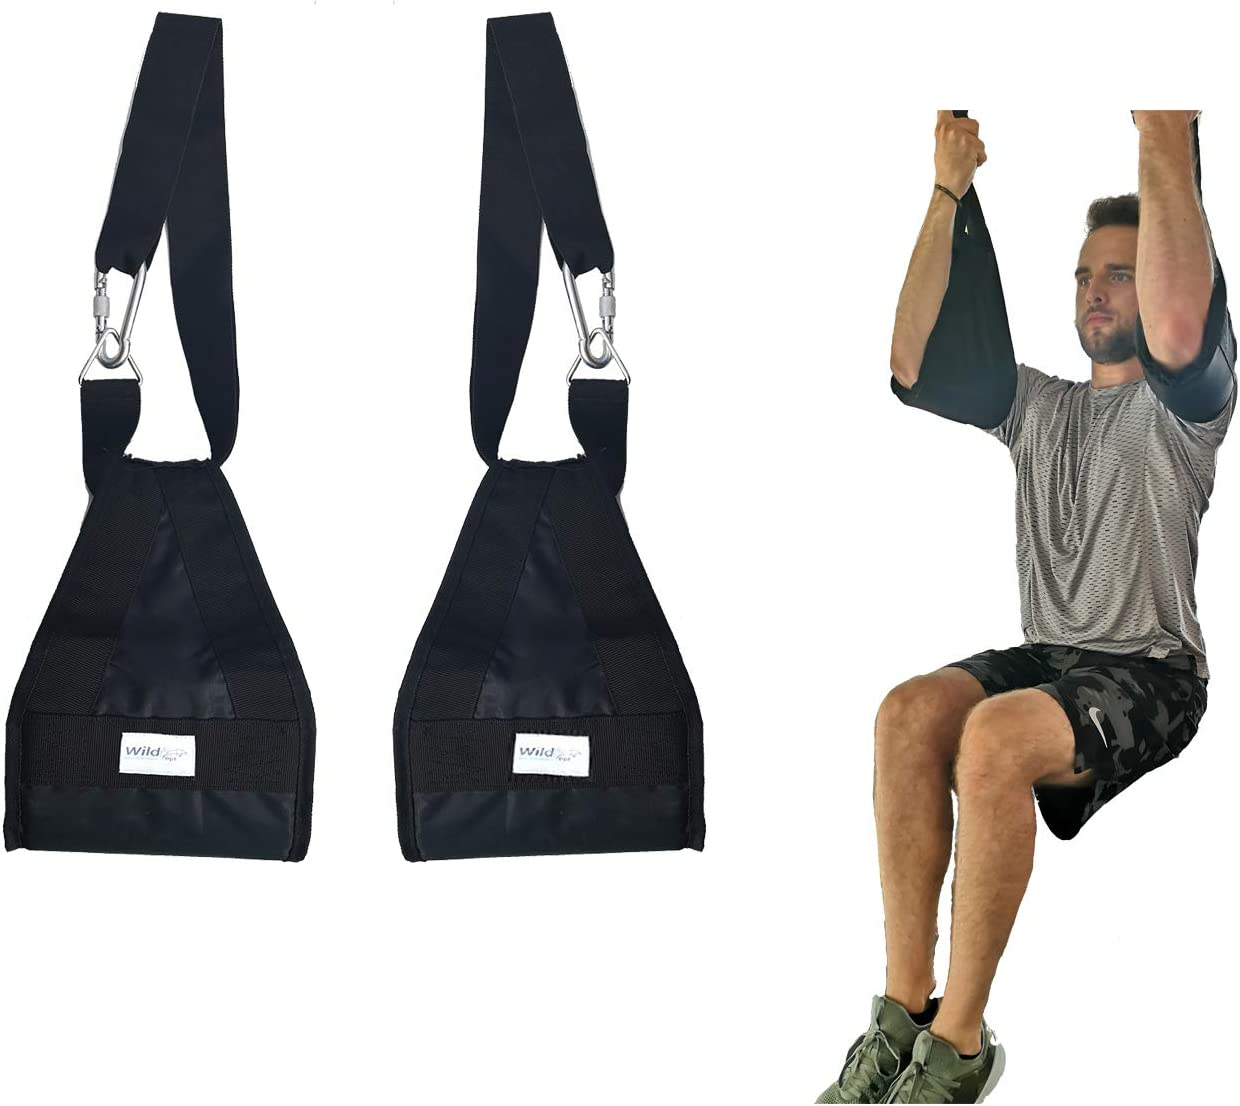 Premium Crunch Pull-ups Ab Straps, Adjustable, Hang Upside Down Leg Exercise, Full Body Gym Fitness, Knee Raise & Bodyweight Trainer, Stomach Workout, Abdominal Hanging for Men and Women